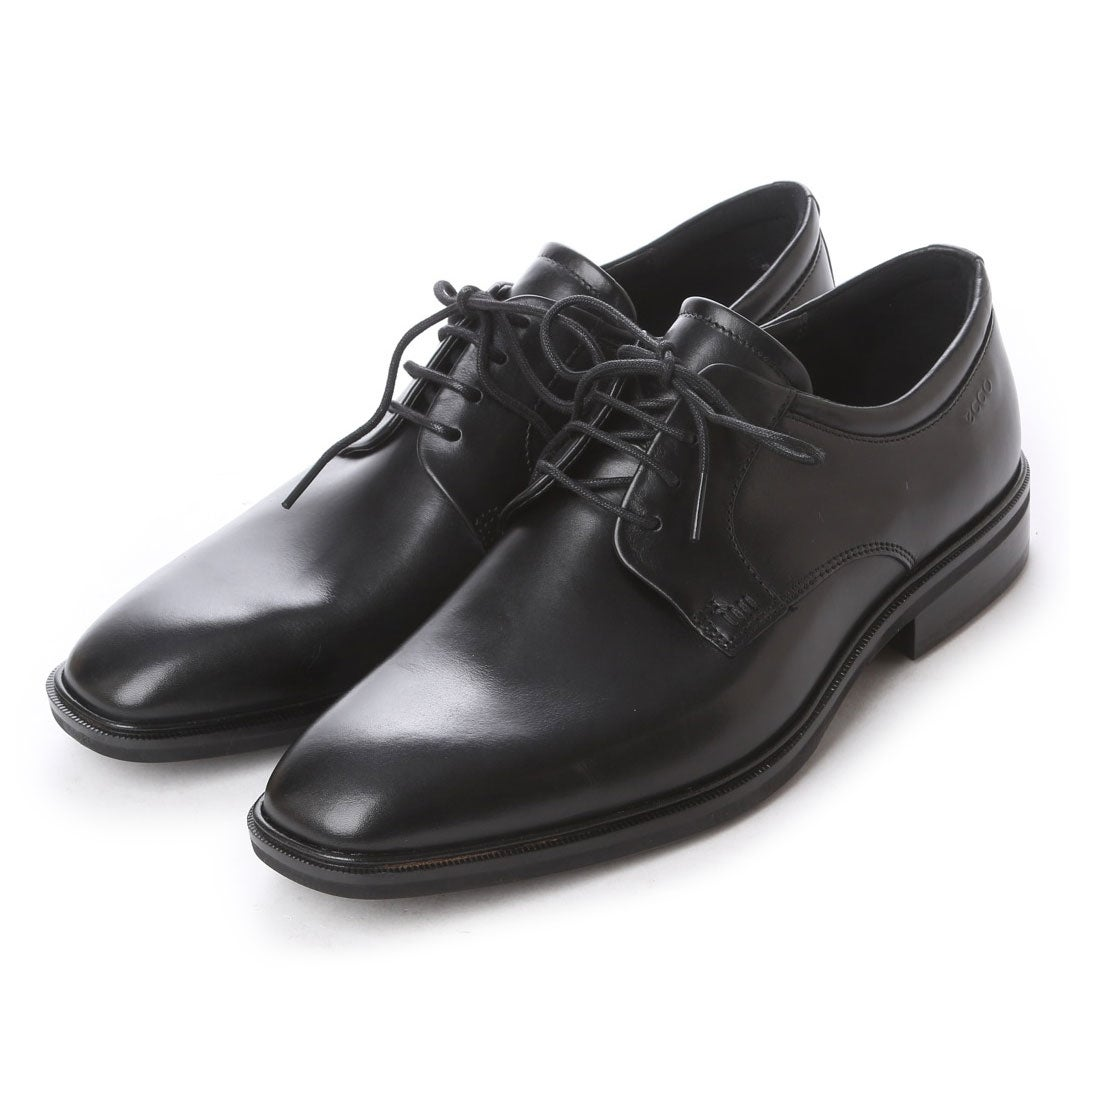 【SALE 30%OFF】エコー ECCO ECCO ILLINOIS (BLACK) メンズ